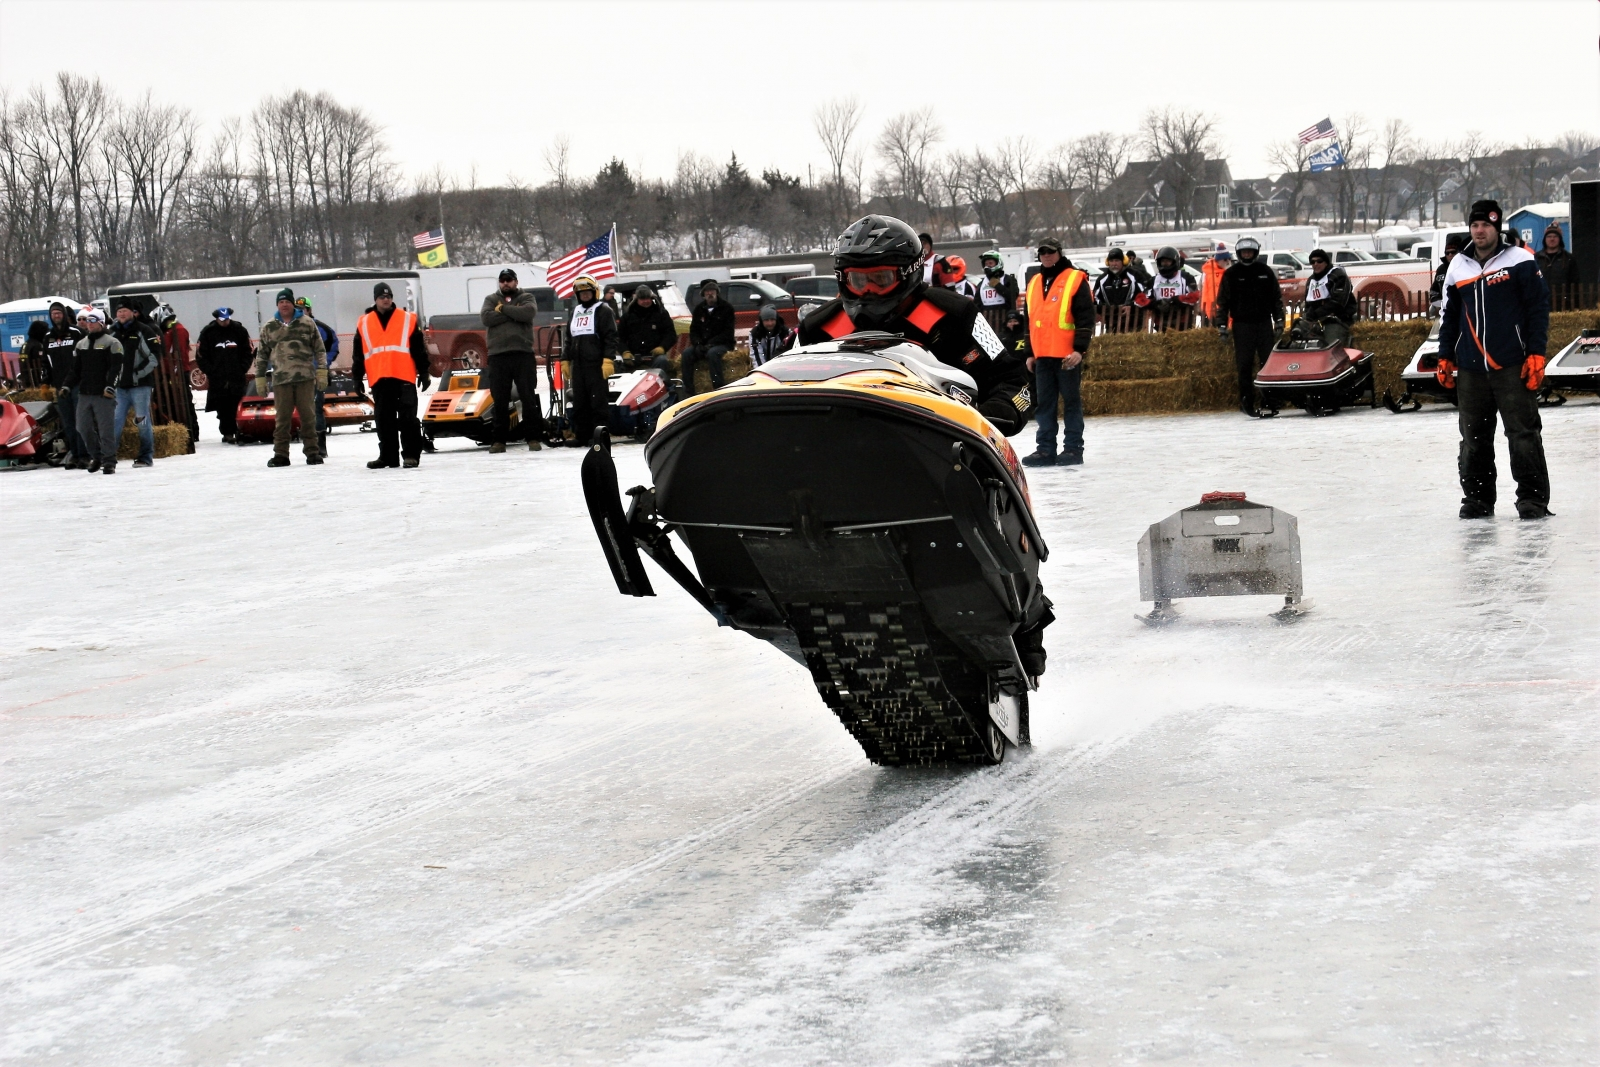 """A snowmobile driver lifting up the front of the sled in a """"wheelie"""" at the Waconia Ride-In. Courtesy Waconia Ride-In."""